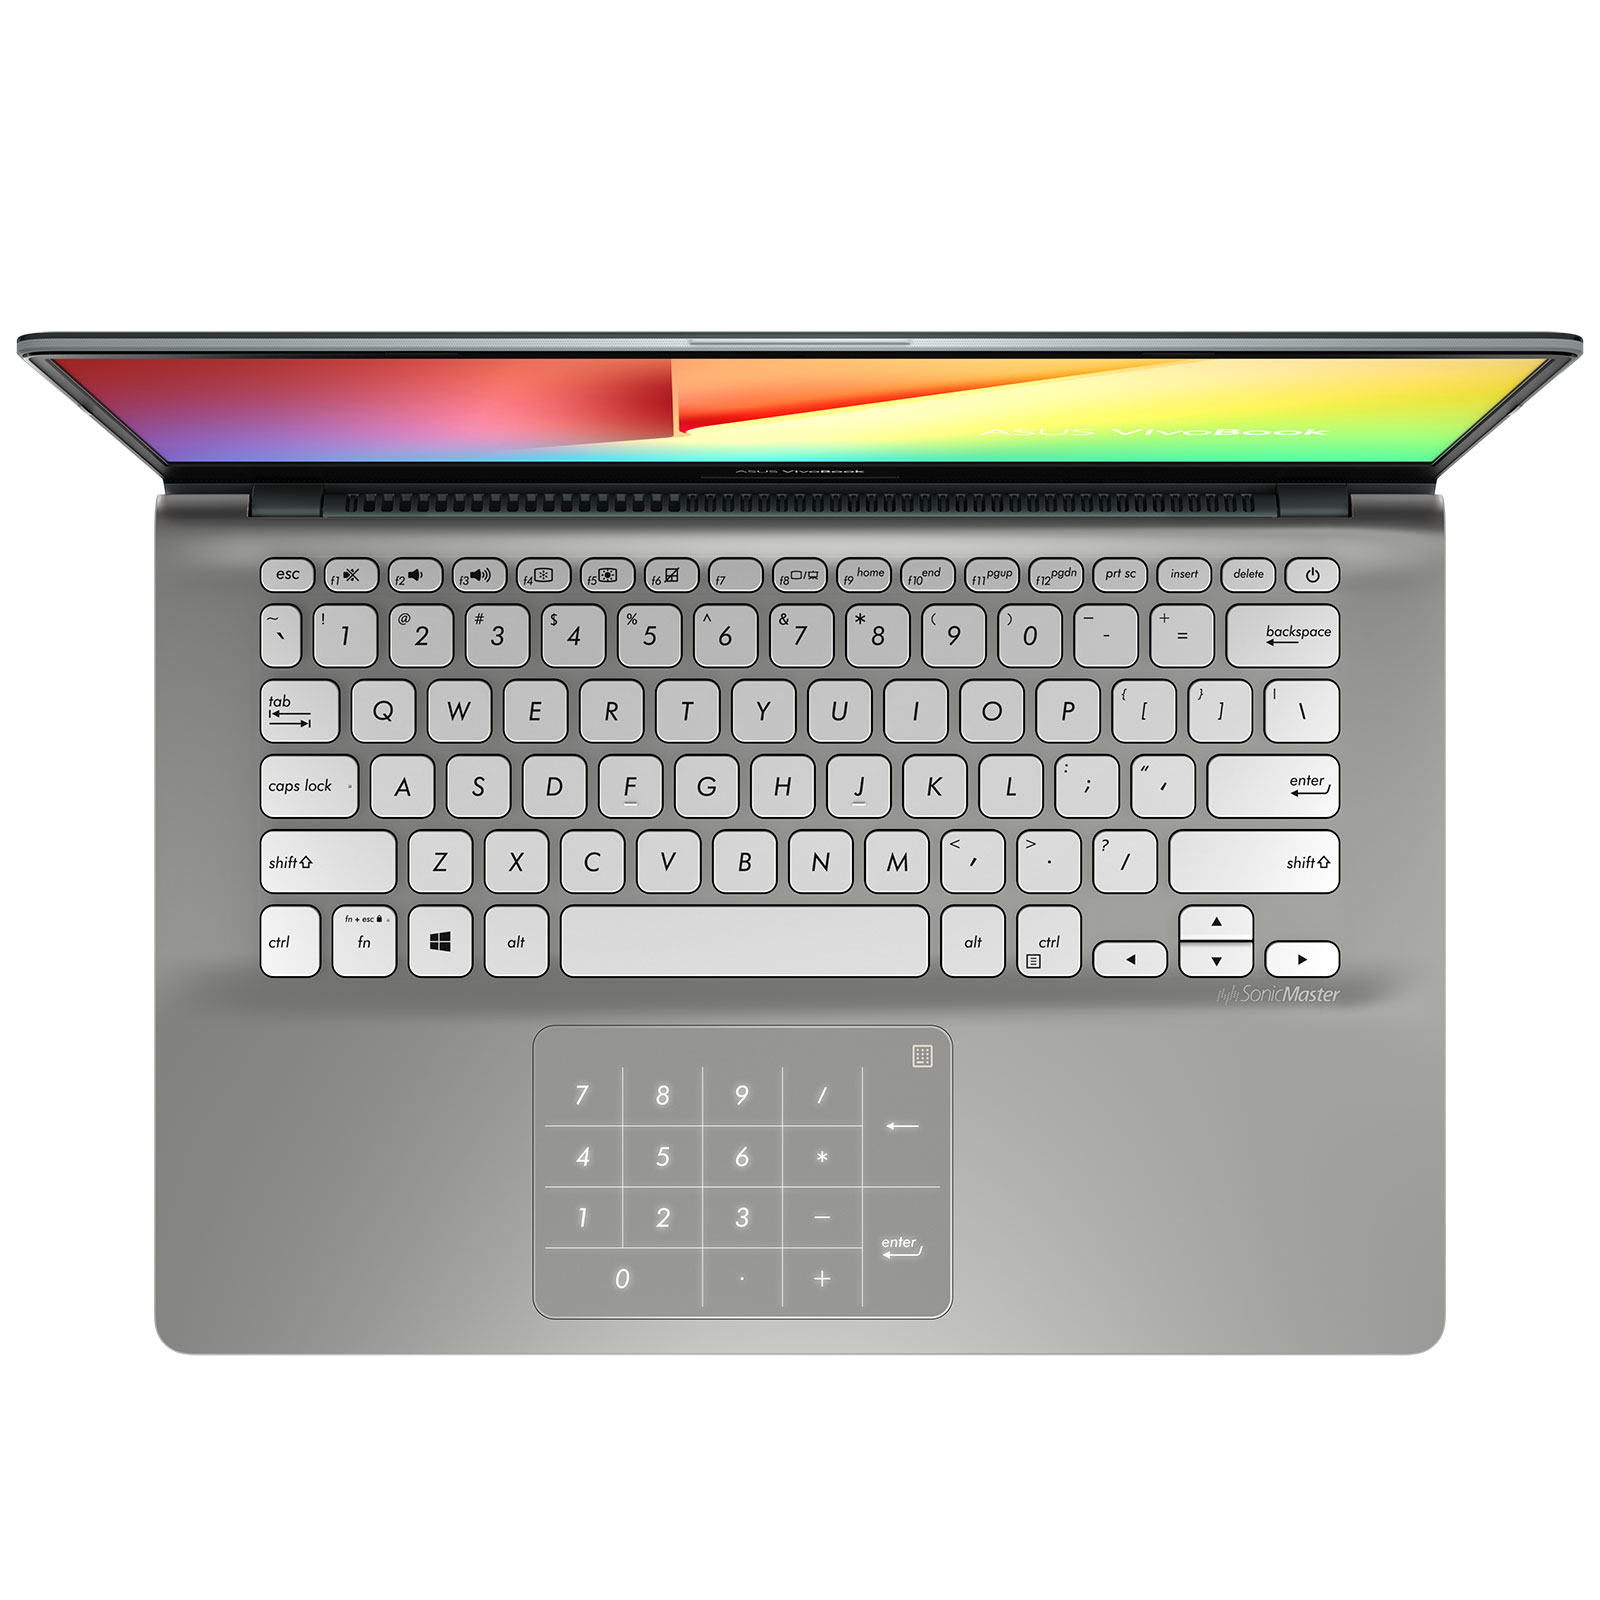 "PC portable ASUS Vivobook S14 S430UA-EB249T avec NumPad Intel Core i3-8130U 8 Go SSD 128 Go 14"" LED Full HD Wi-Fi AC/Bluetooth Webcam Windows 10 Famille 64 bits (garantie constructeur 2 ans)"